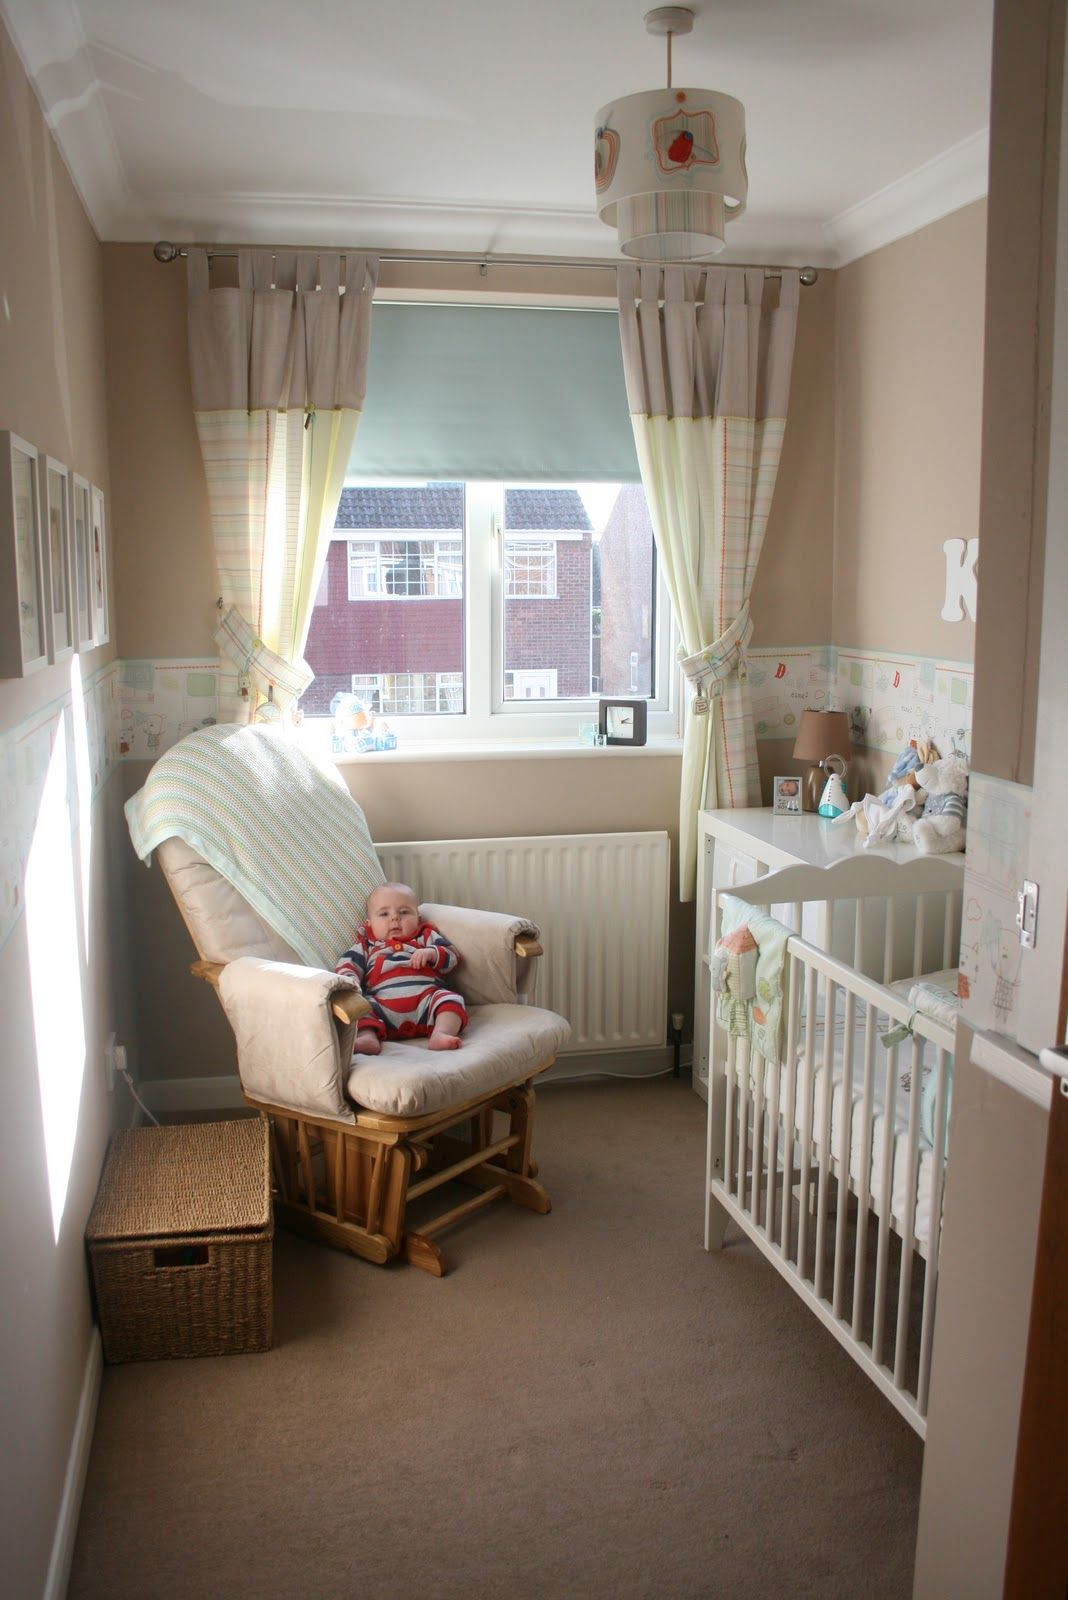 Nursing Chair Nursery Google Search